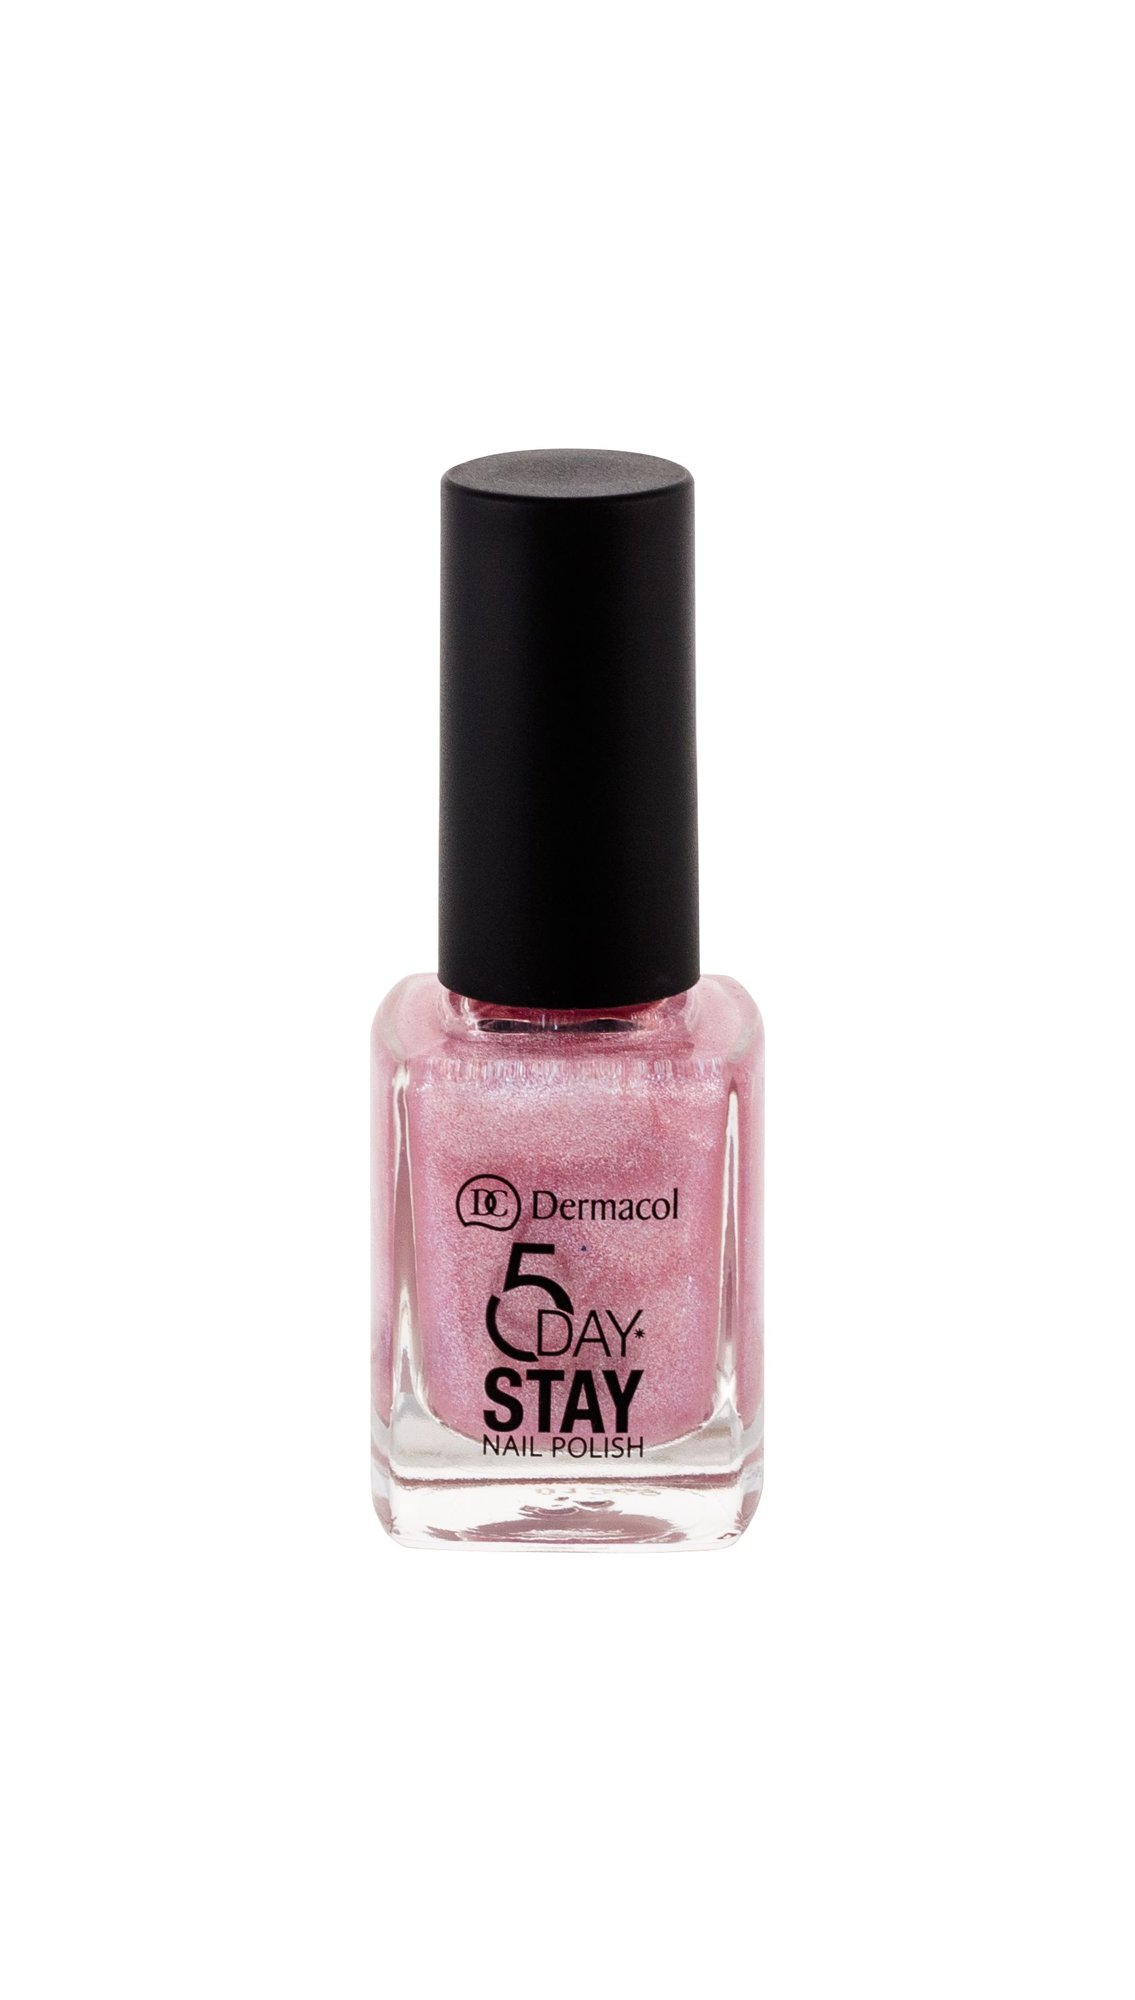 Dermacol 5 Day Stay Nail Polish 11ml 47 Sparkle